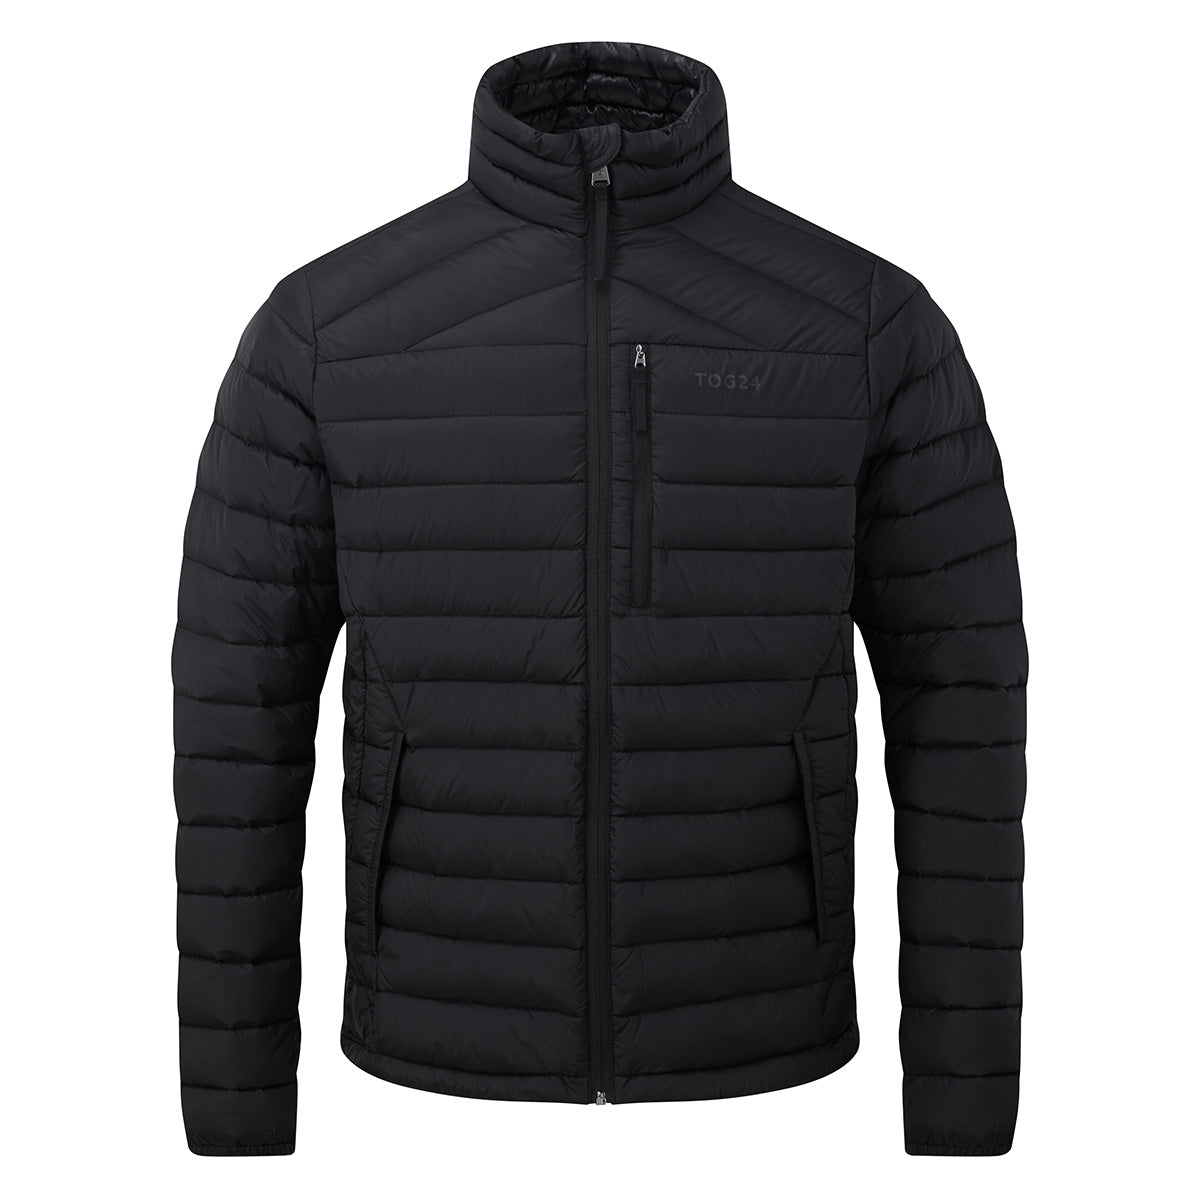 Drax Mens Funnel Down Jacket - Black image 4